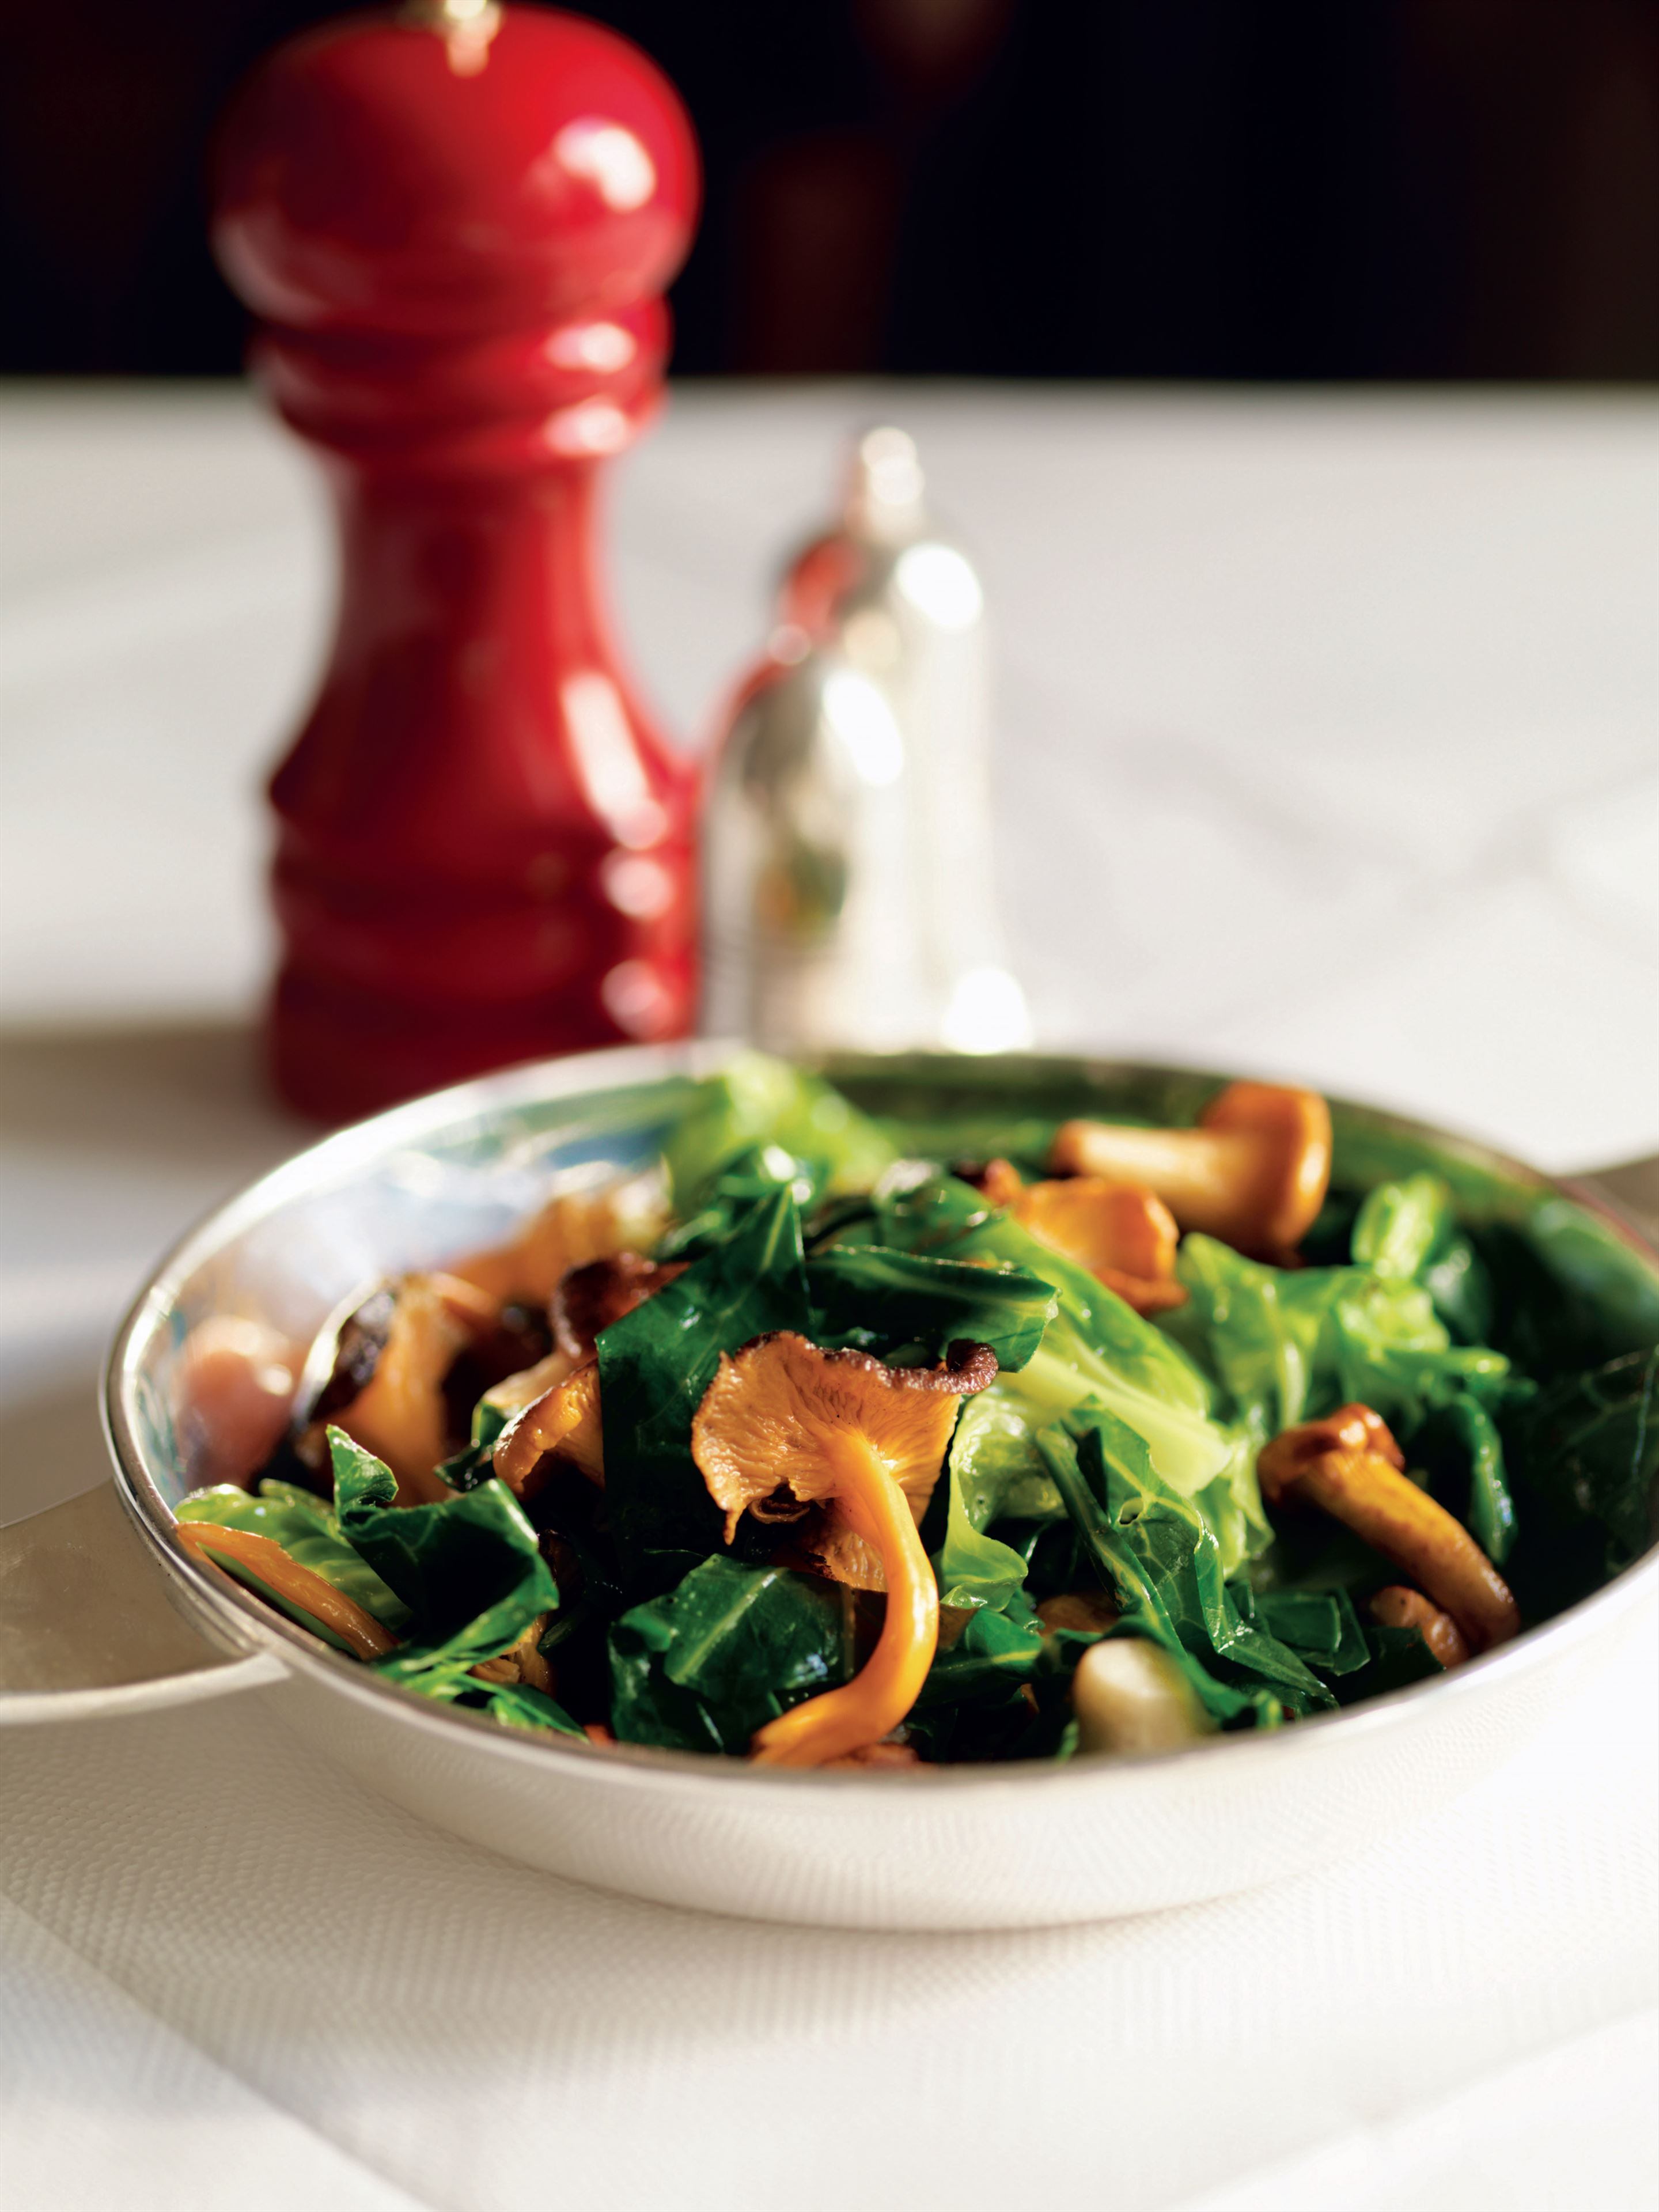 Autumn greens with wild mushrooms